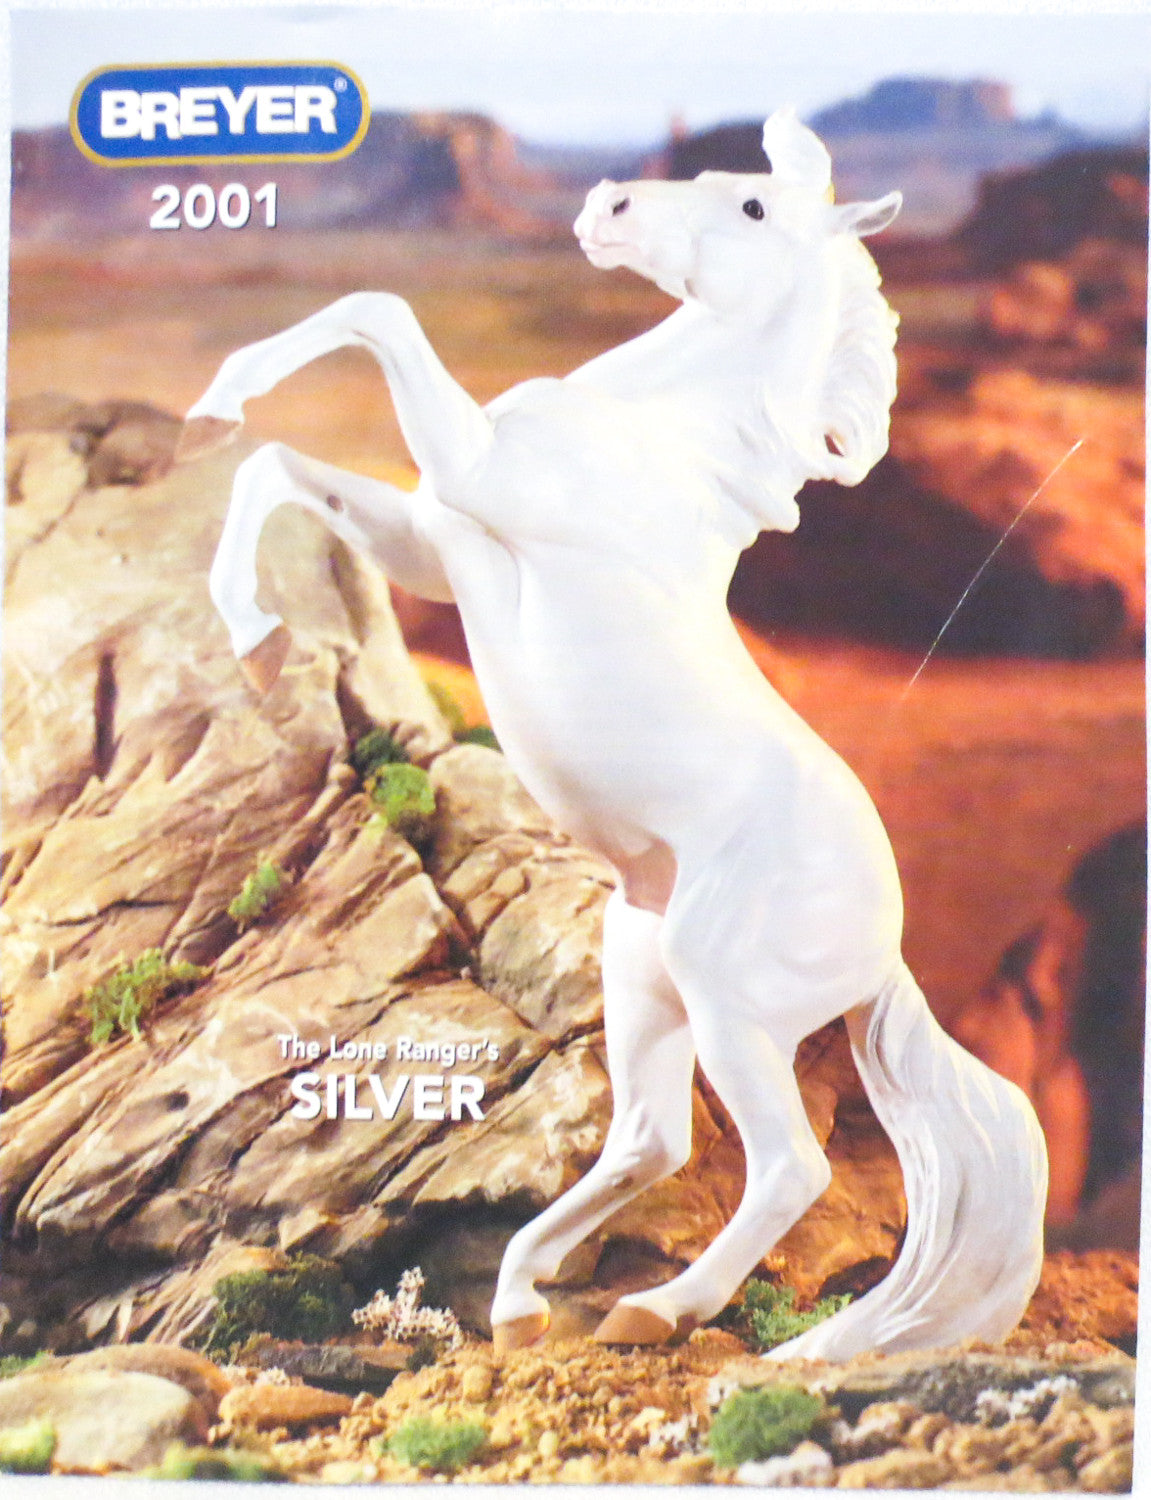 2001 Breyer Box Brochure - triple-mountain